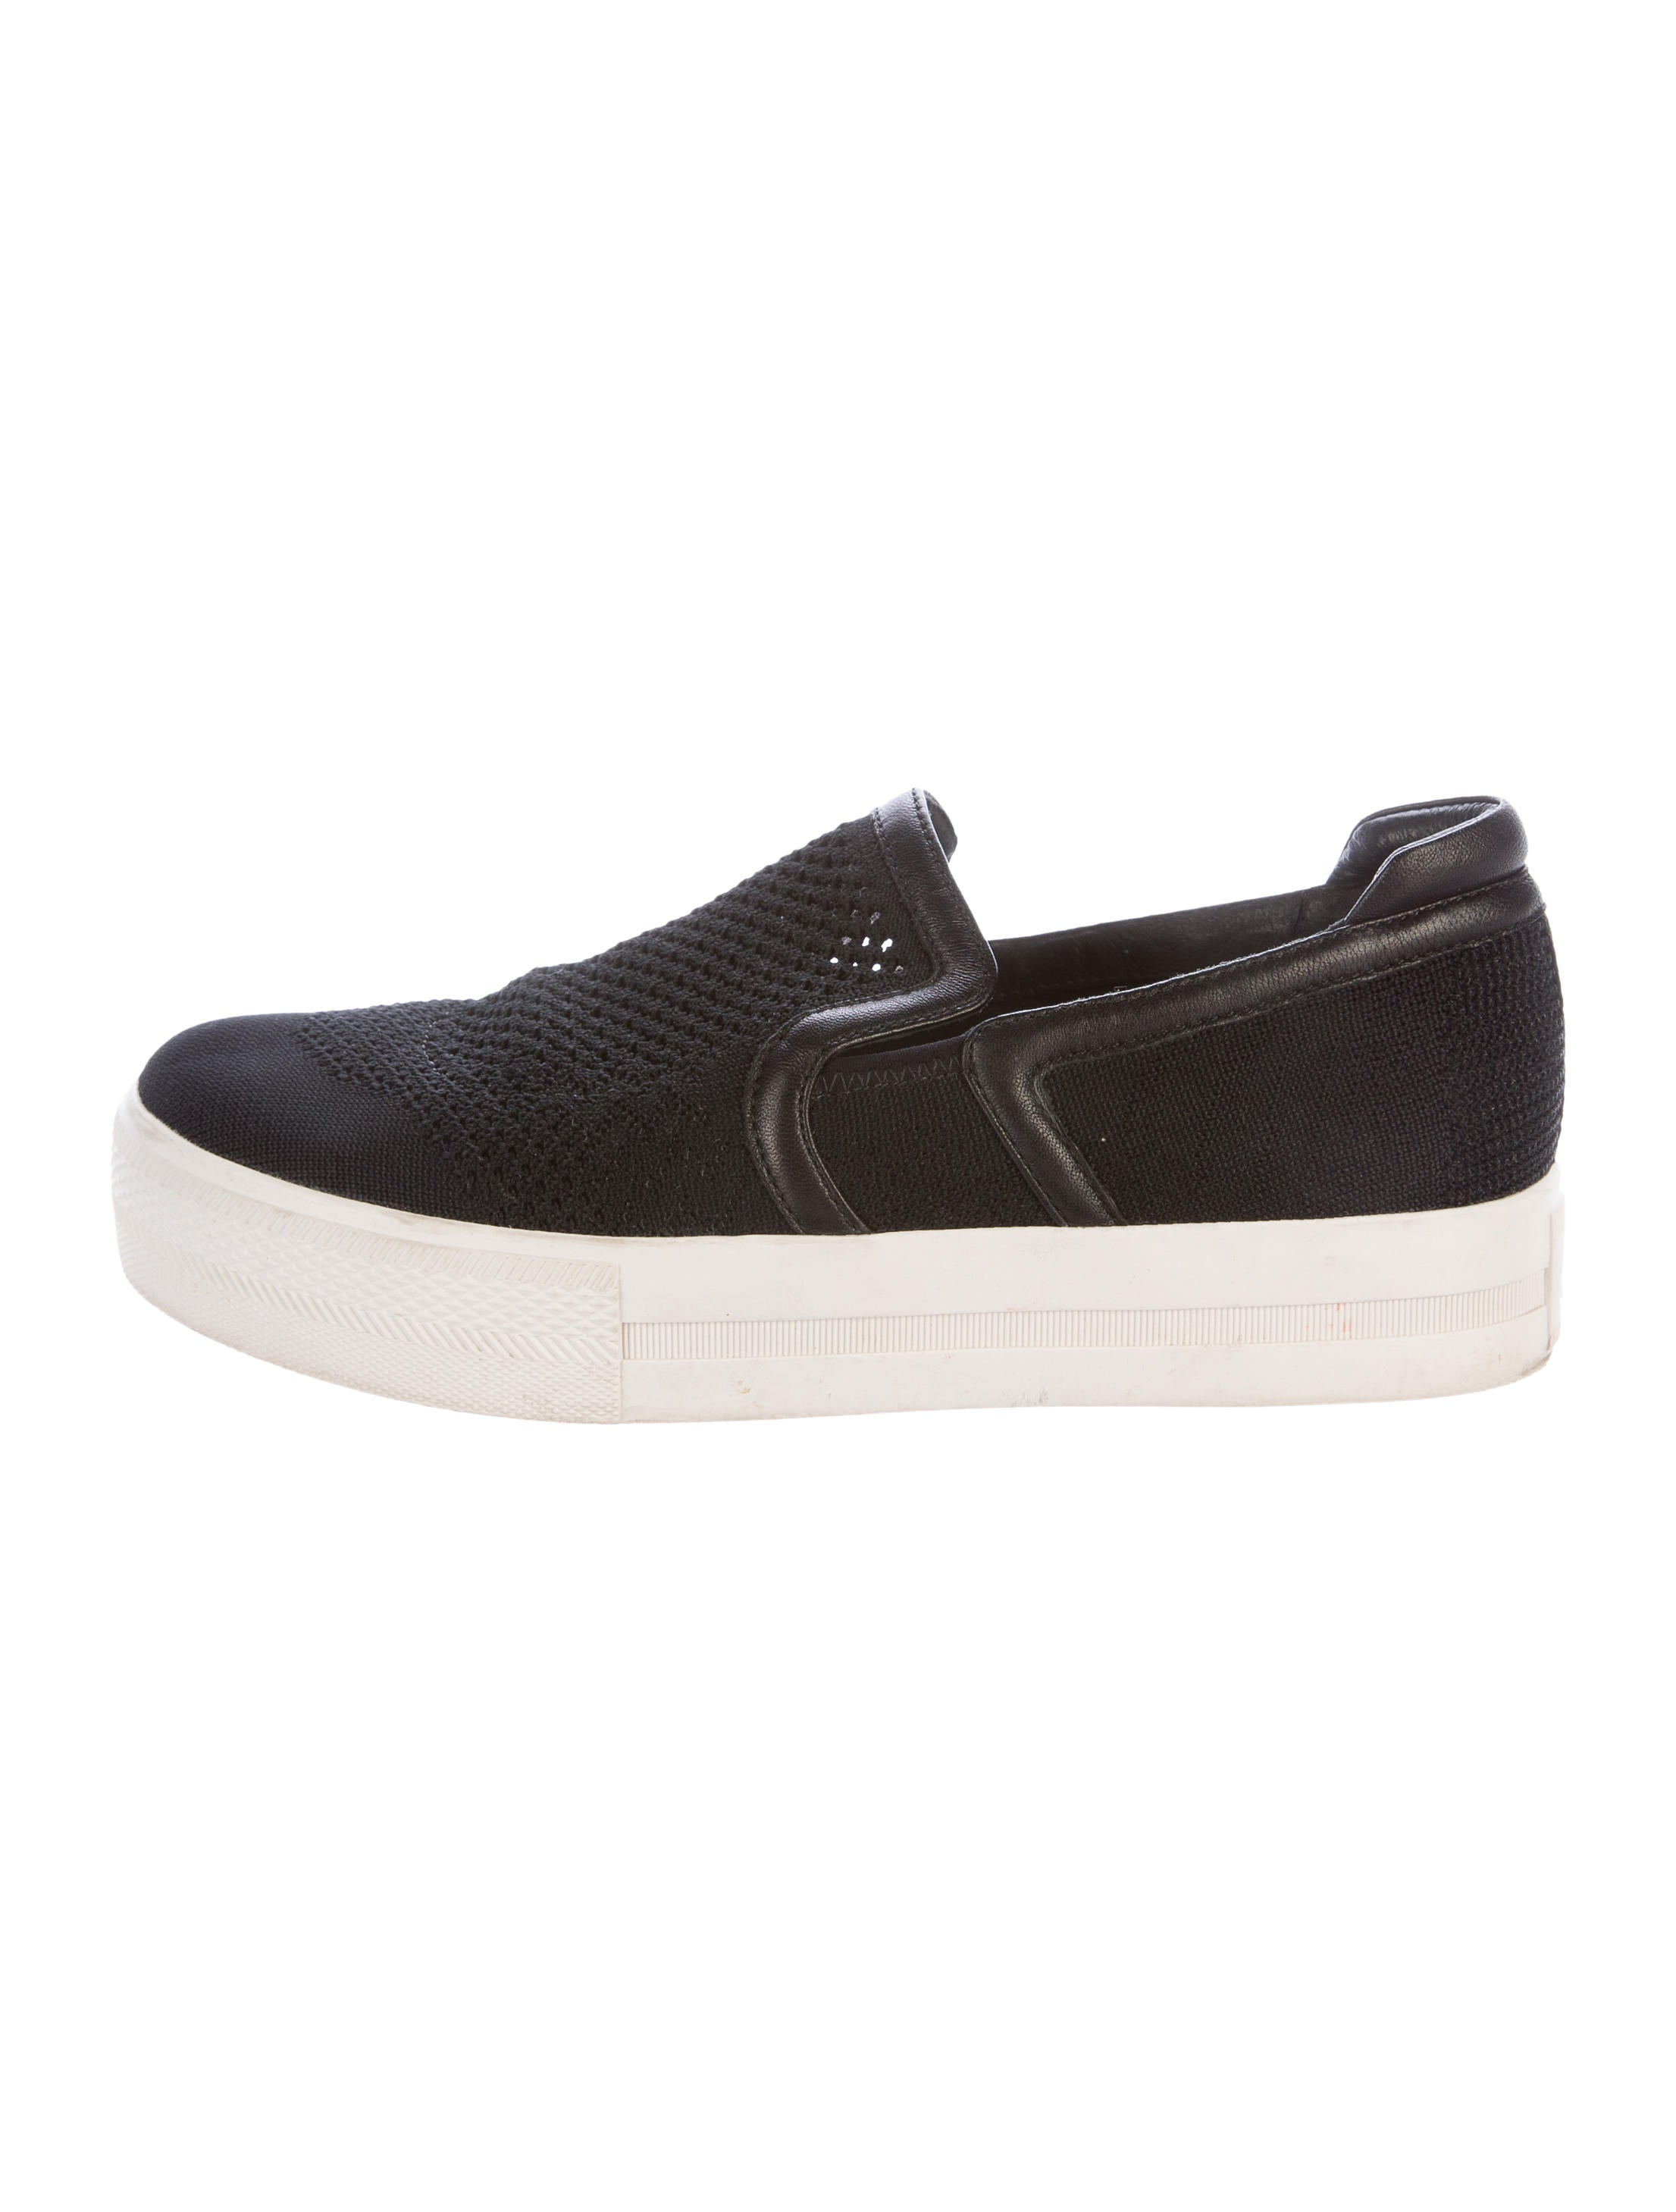 ash canvas slip on sneakers shoes wab20201 the realreal